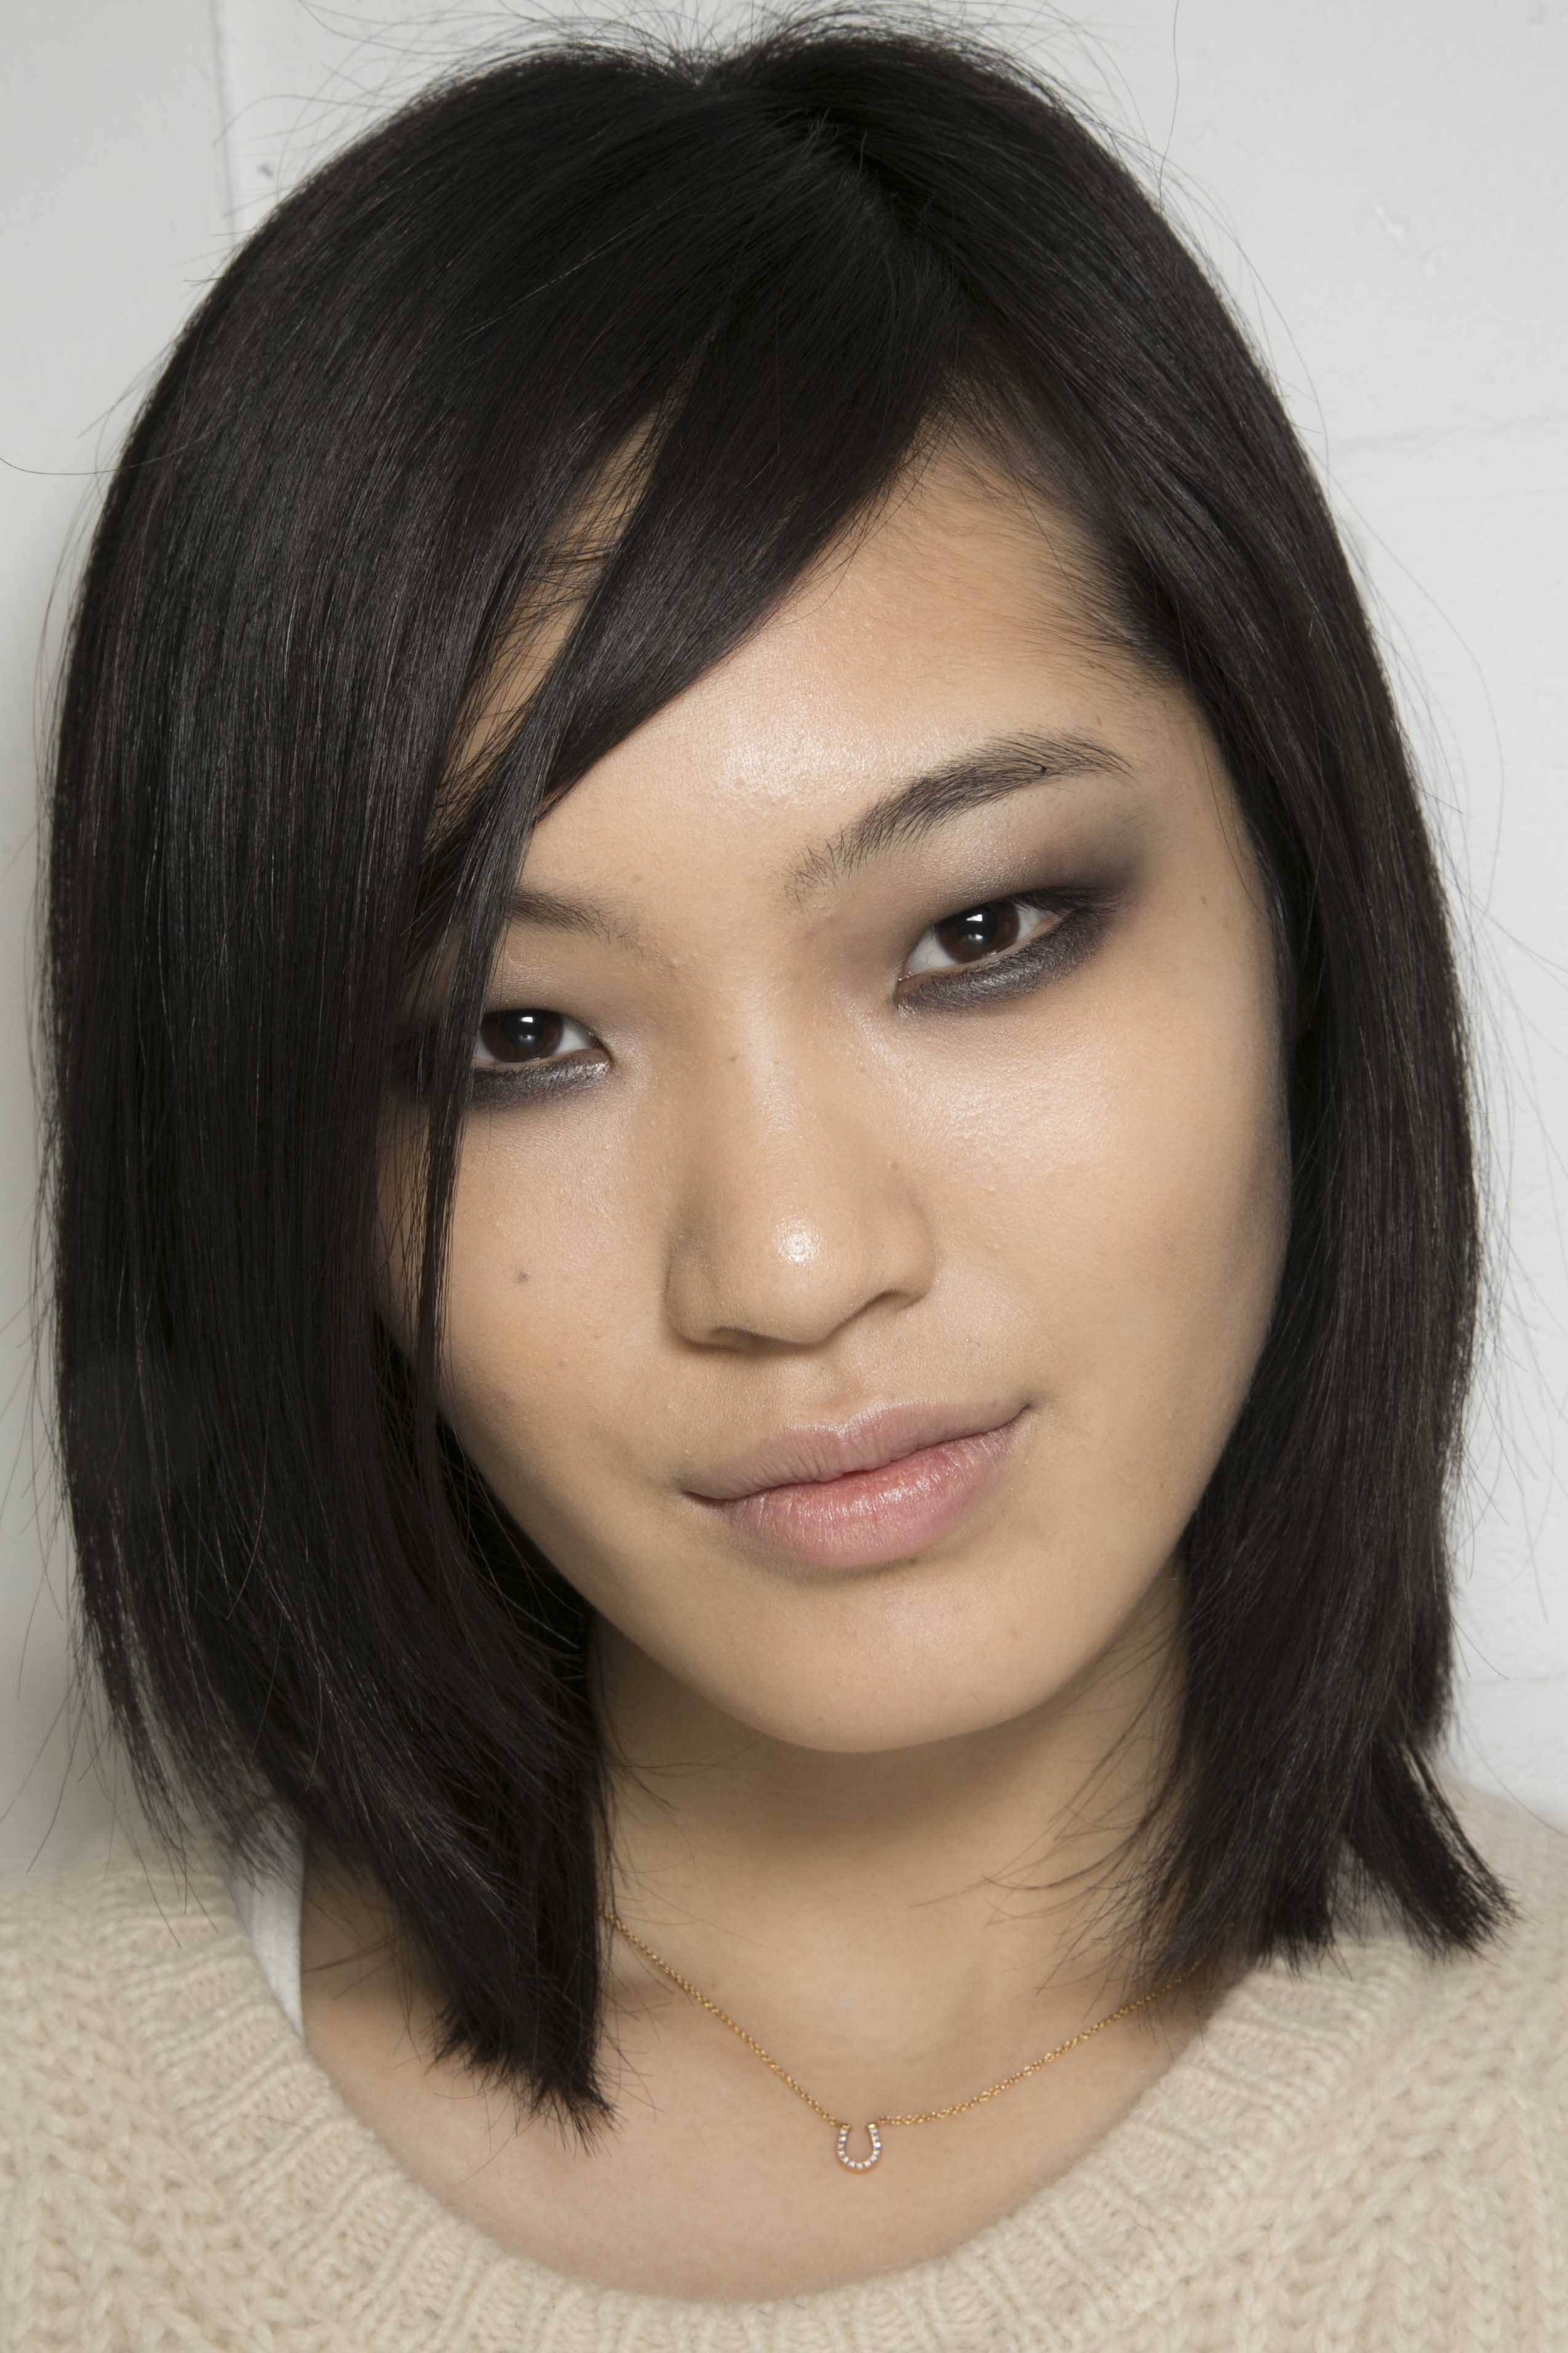 17 Amazing Asian Hairstyles For Your Next Trip To The Salon throughout Hairstyle For Thin Hair Asian